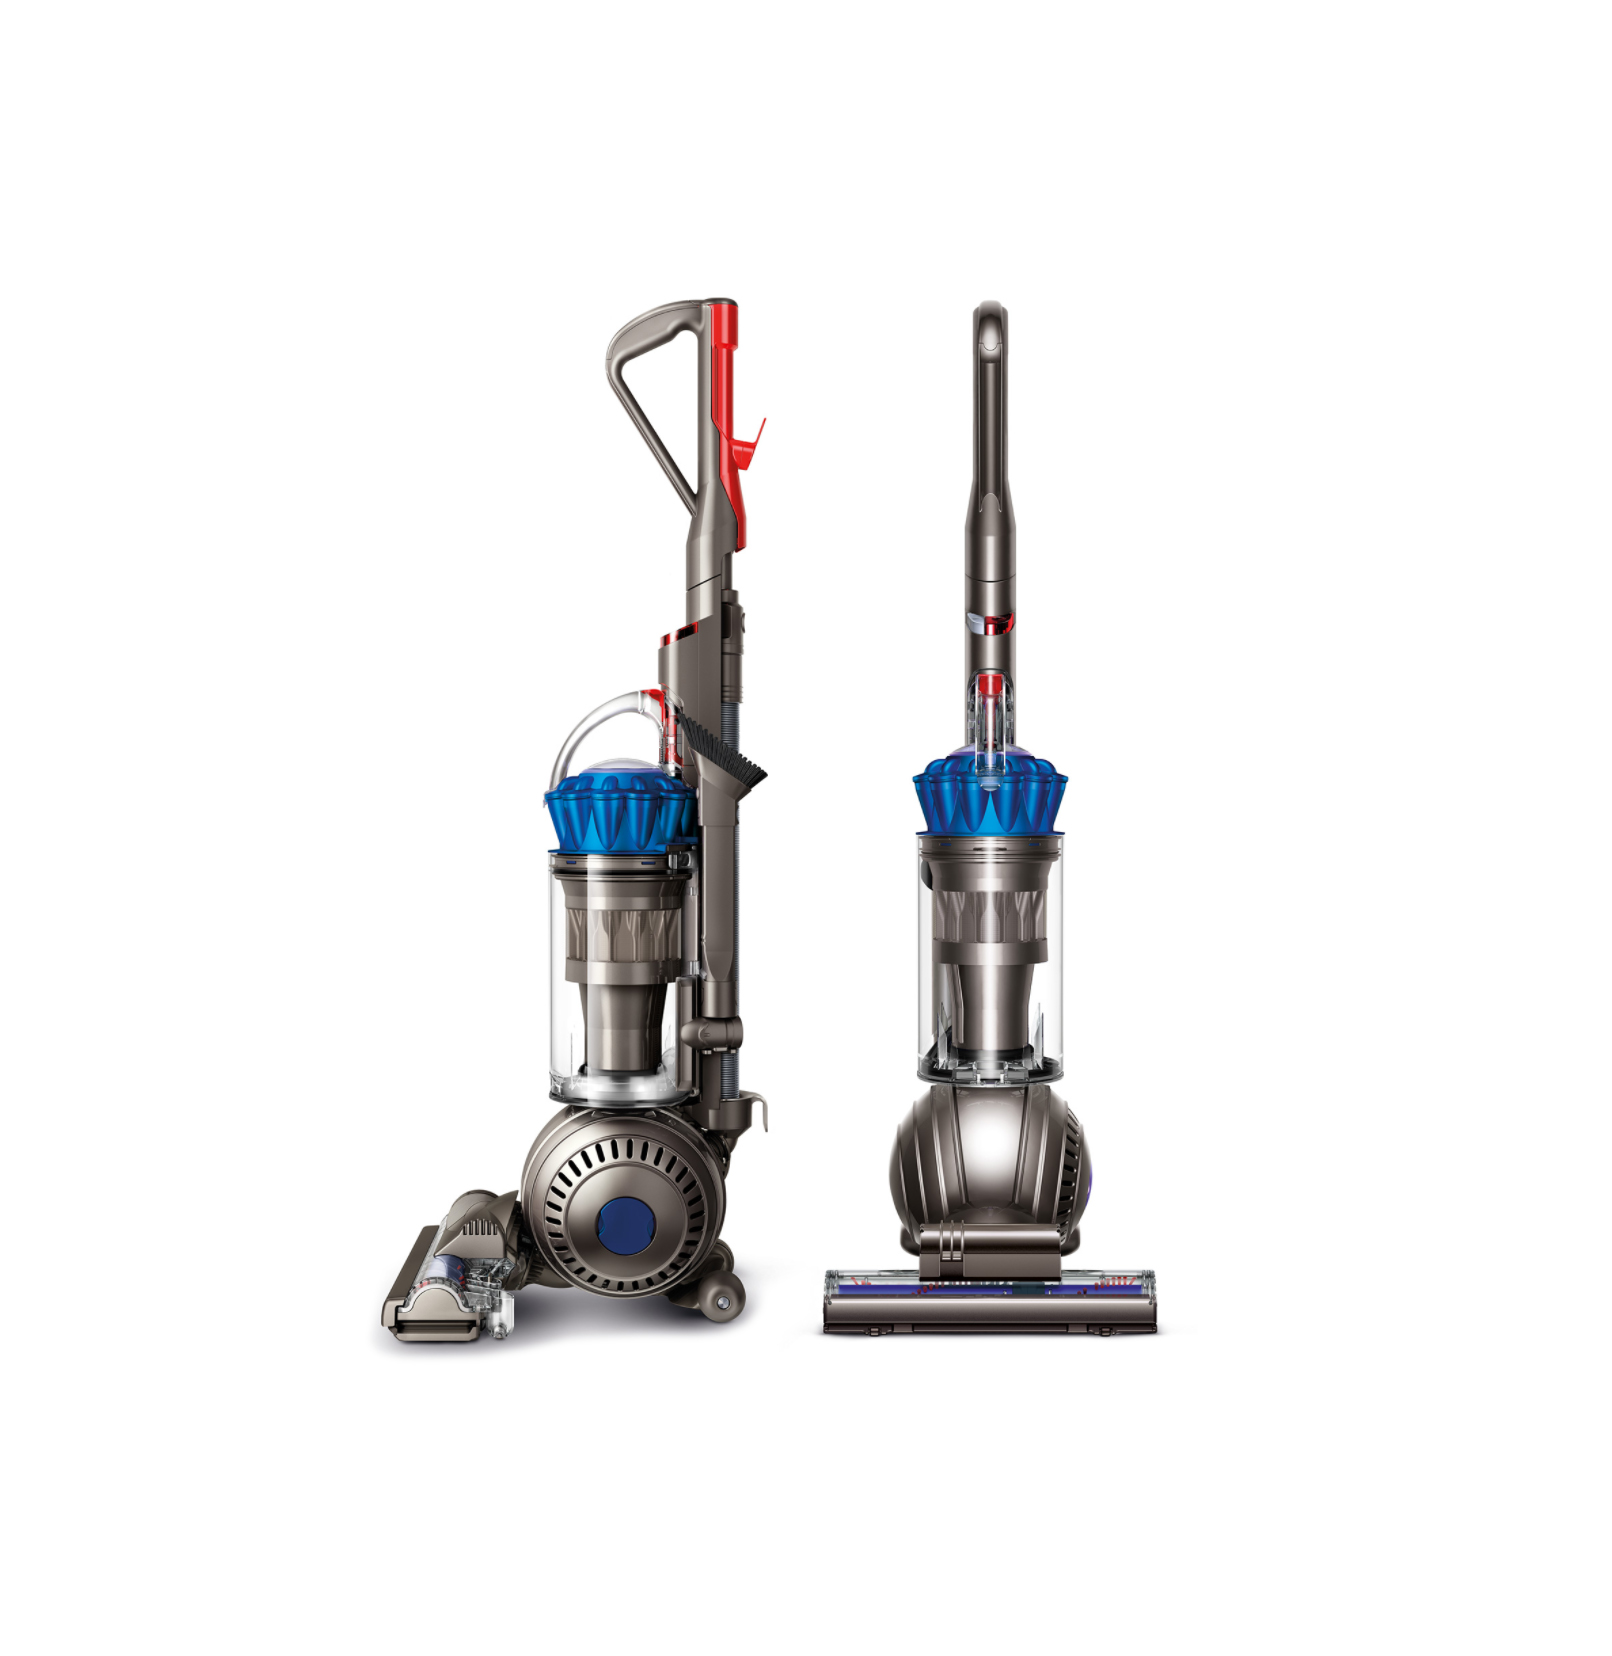 Score Amazing Deals on Vacuums and Fans During Dyson's Huge Sale